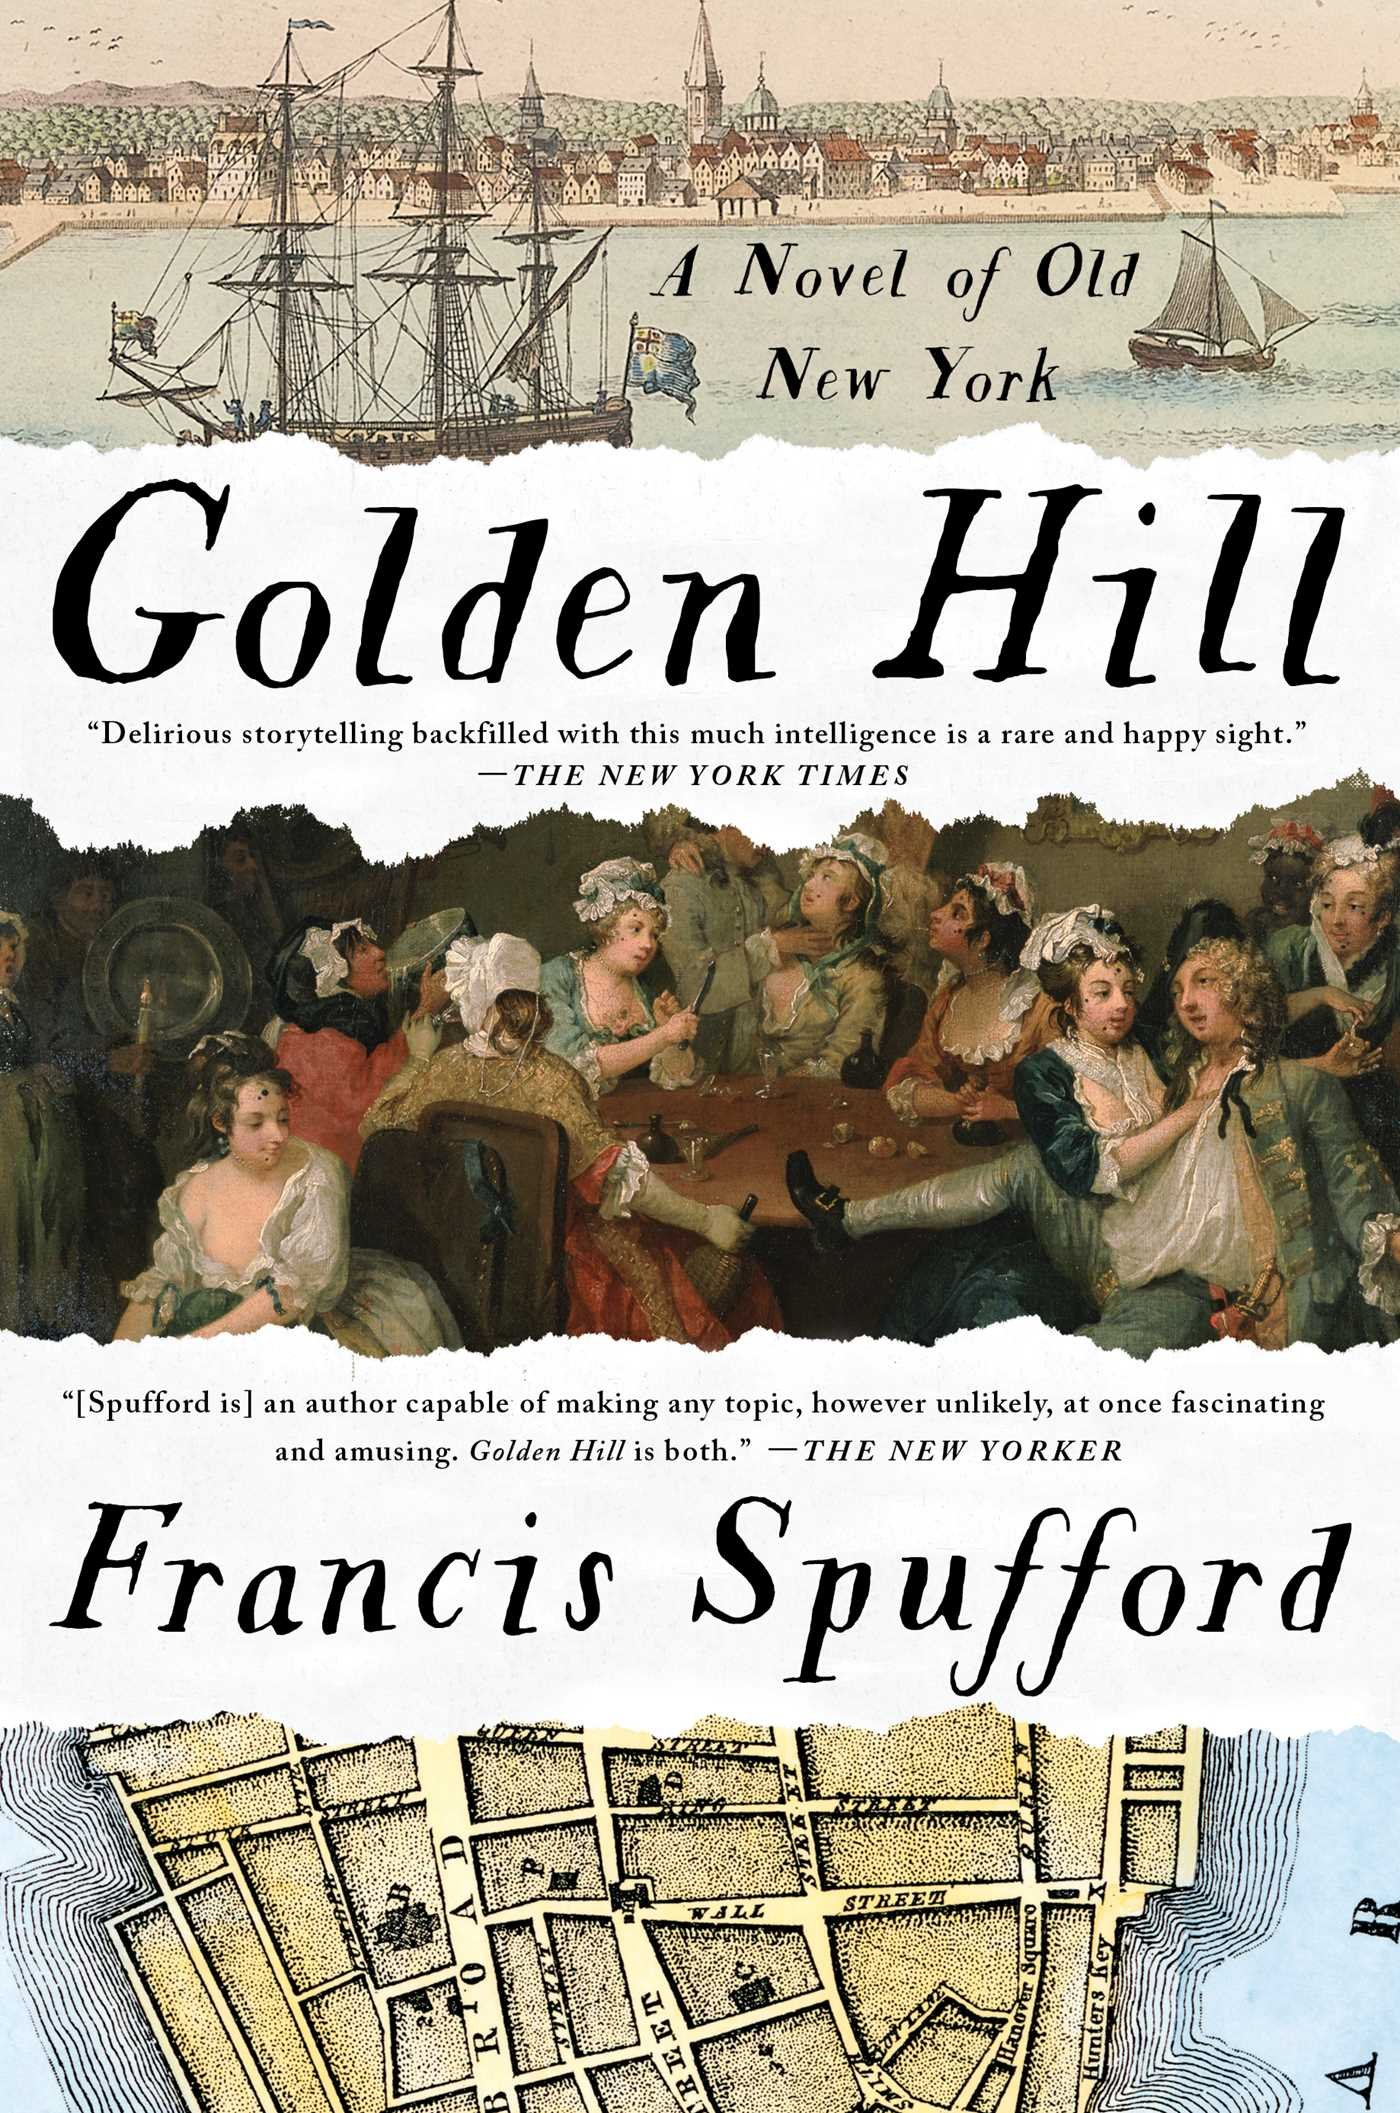 Travel Back to Old New York in this Spectacular Novel